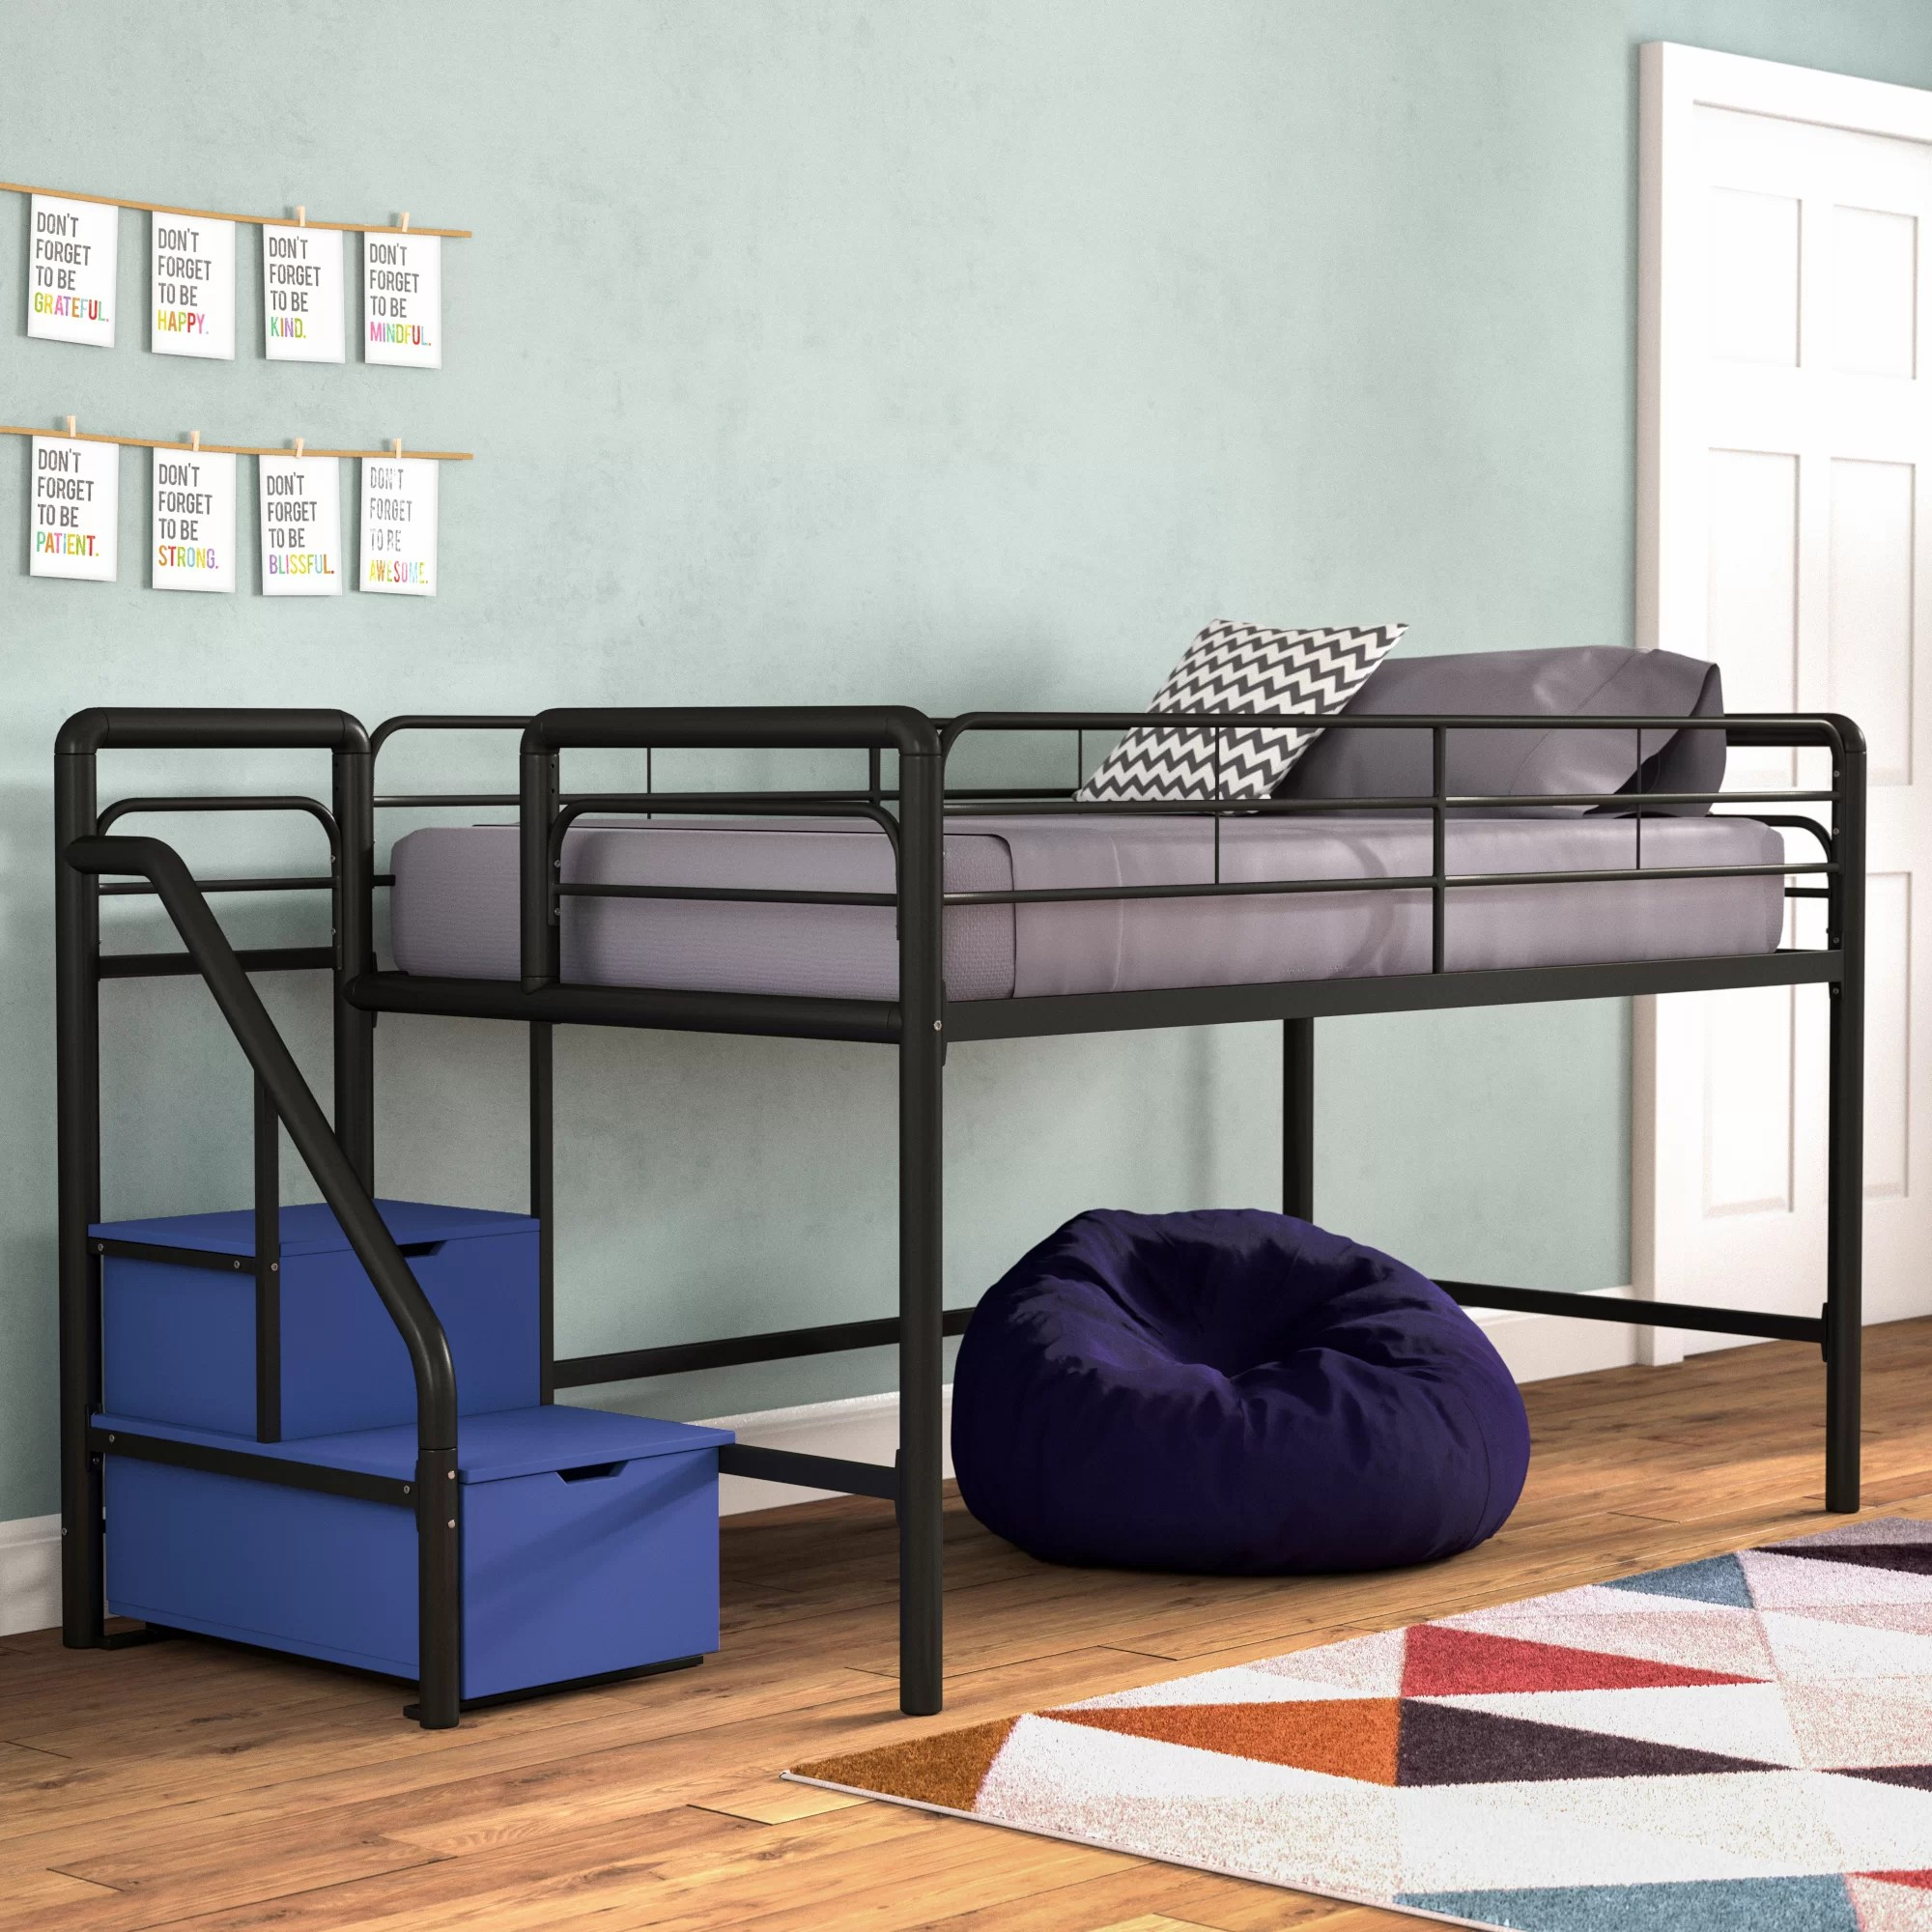 Snooze Bunk Beds Bewley Junior Twin Loft Bed With Storage